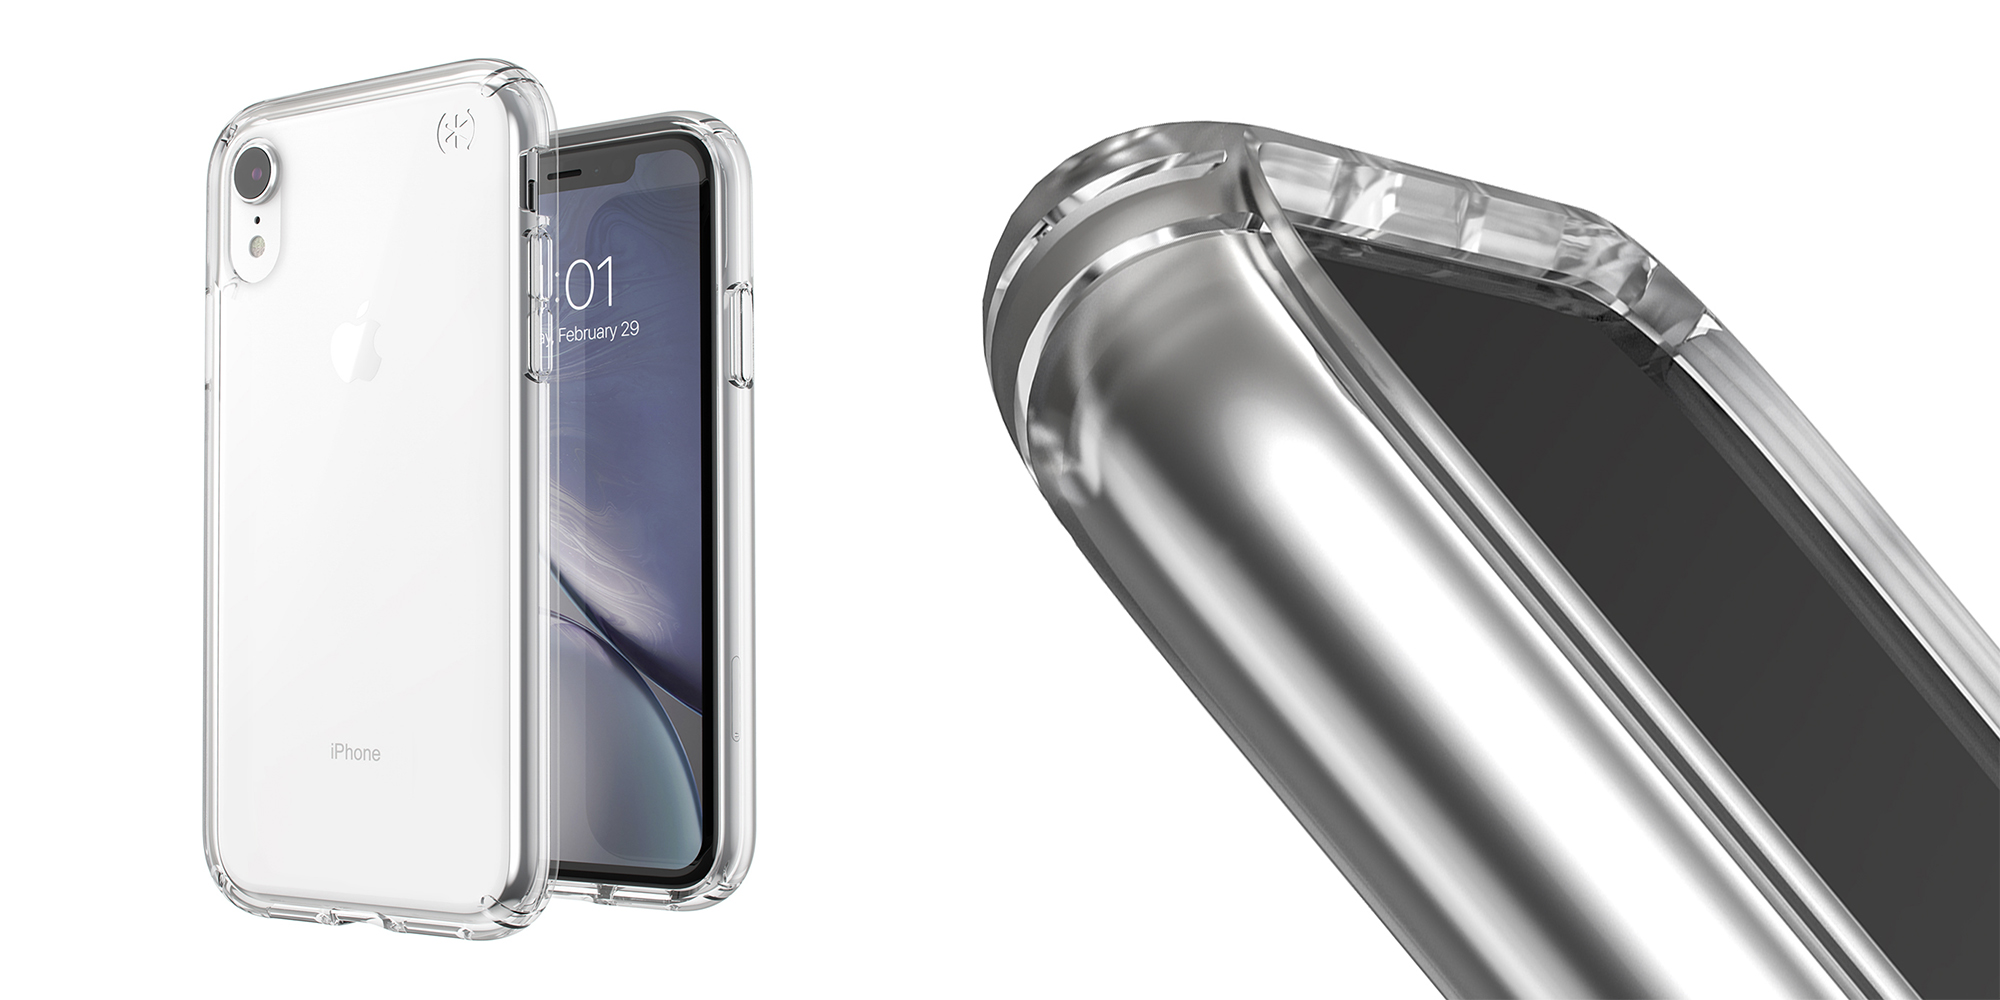 Best iPhone XR clear case alternatives to Apple's official $40 option